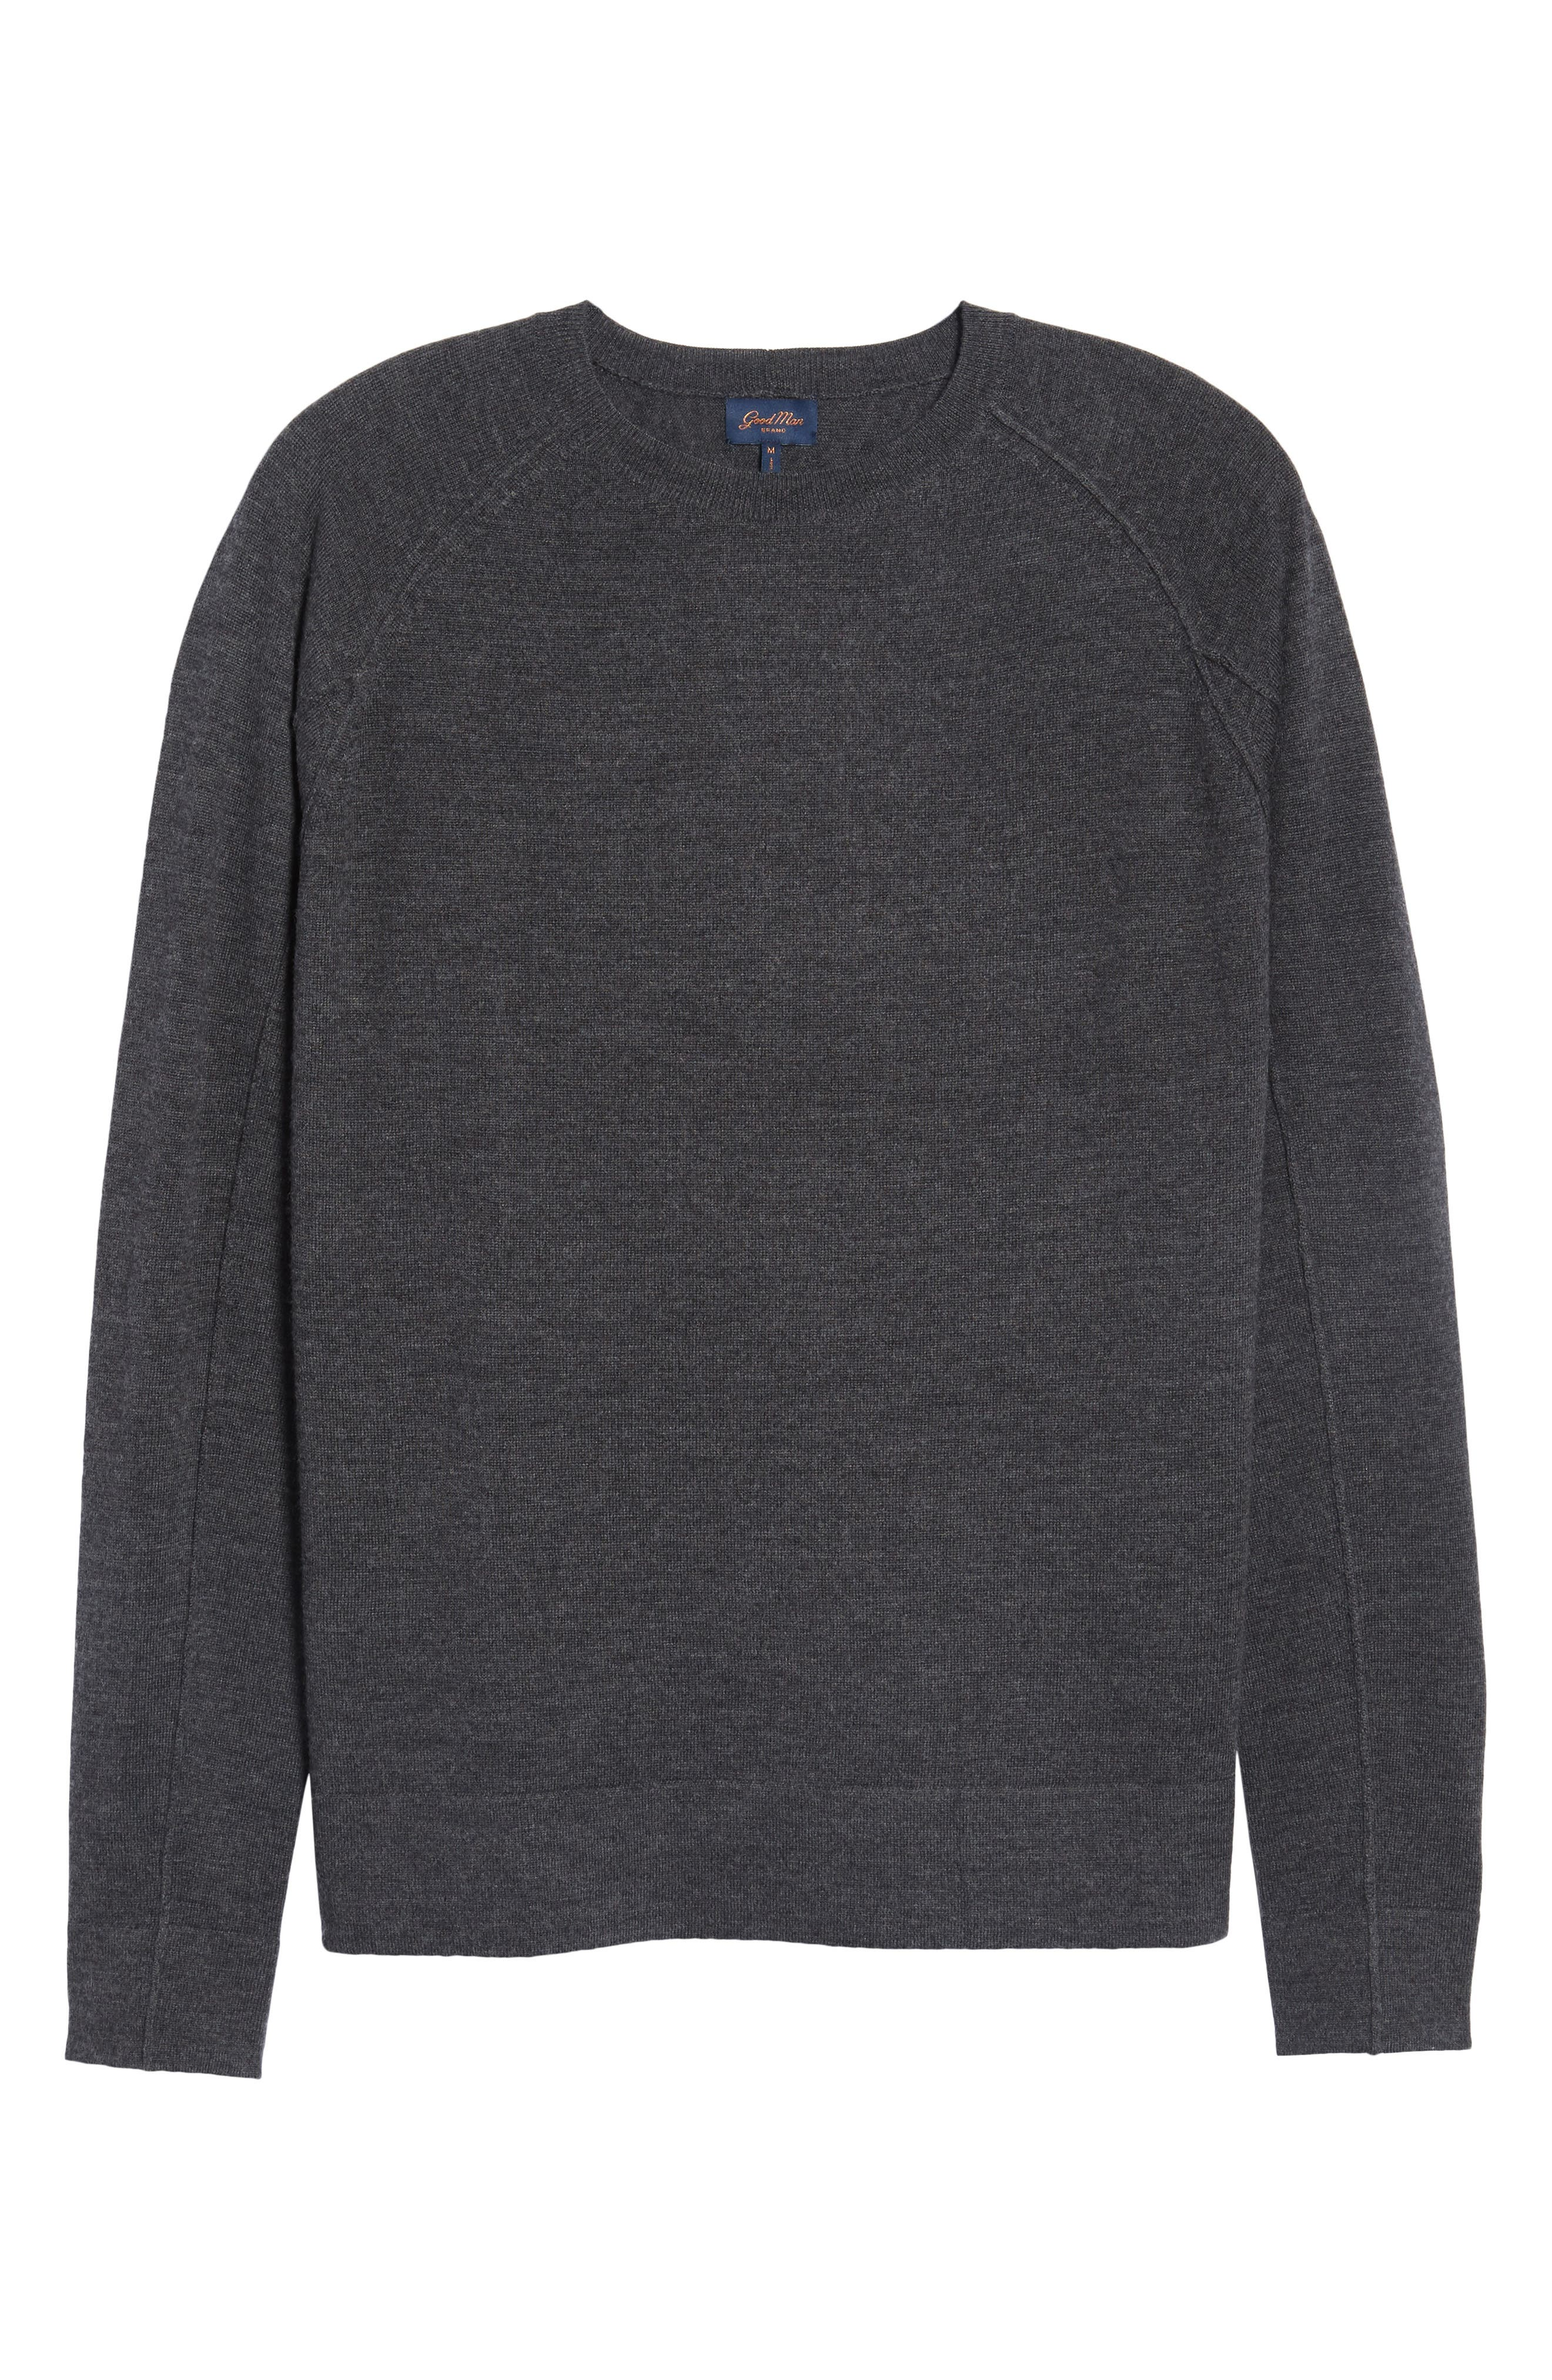 Superlight Slim Modern Wool Sweater,                             Alternate thumbnail 6, color,                             Charcoal